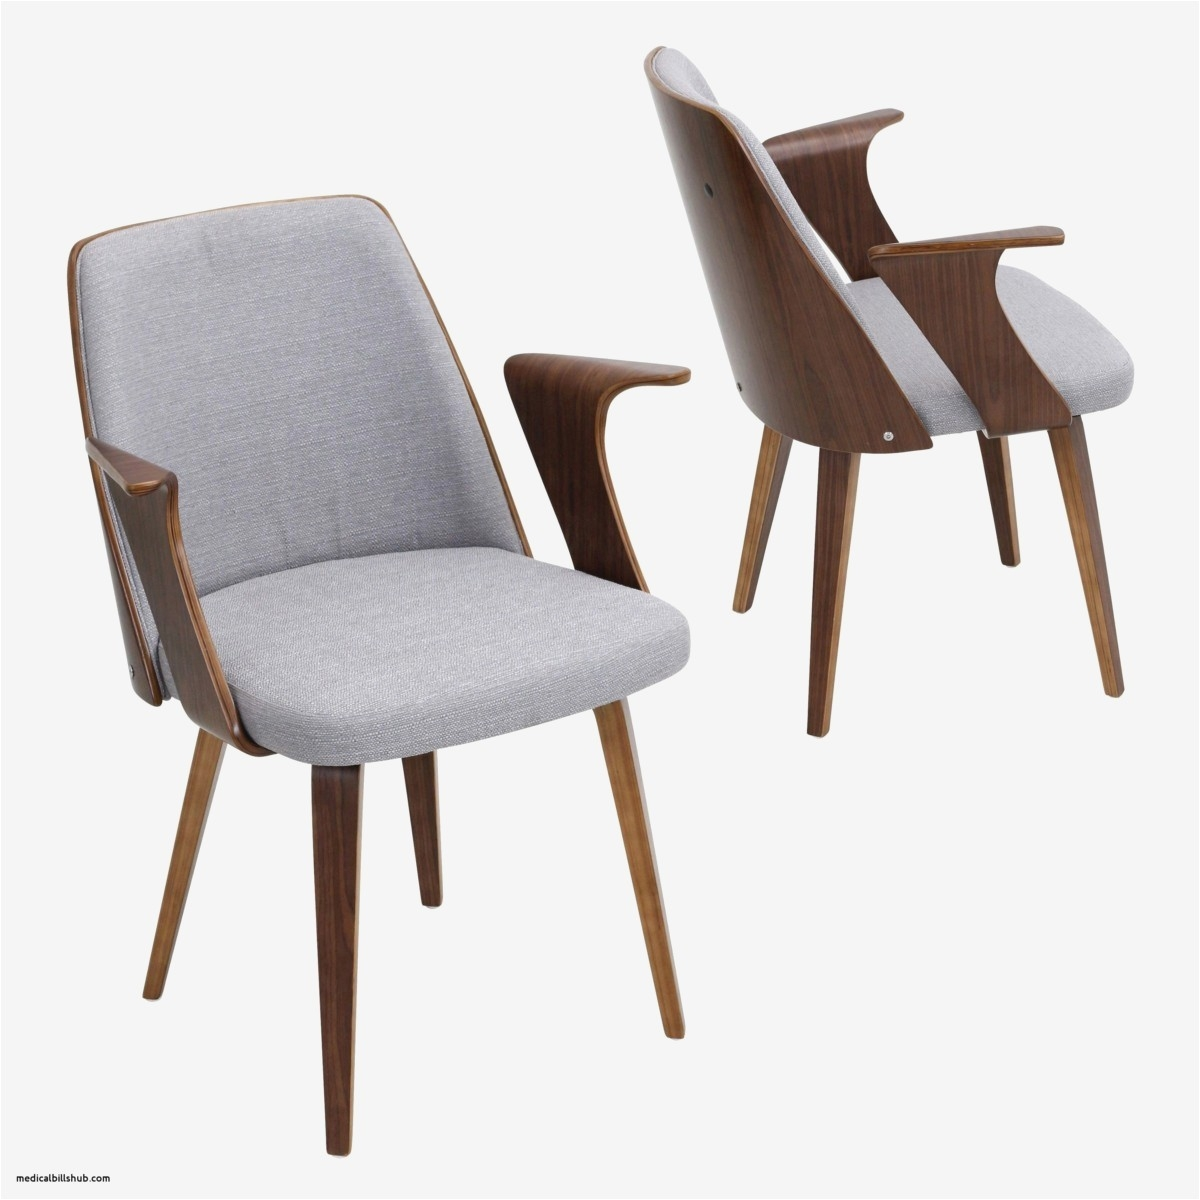 modern accent chair minimalist queen ann wingback chair associates degree in medical billing and